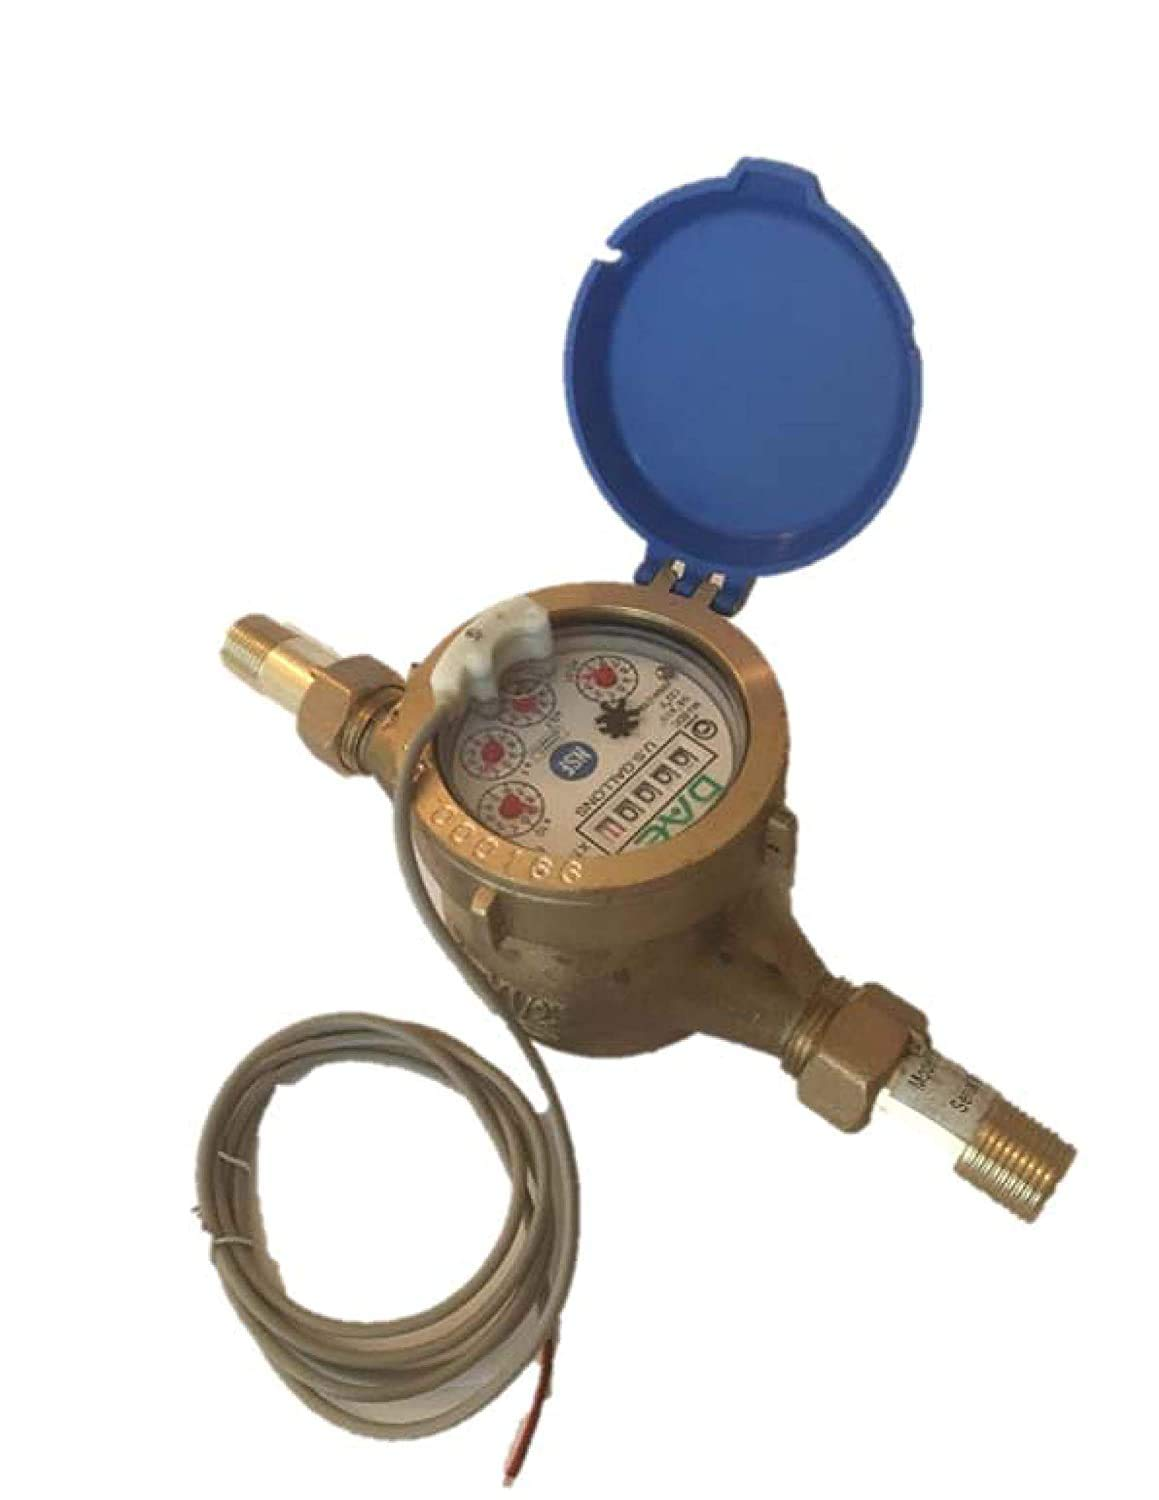 DAE MJ-50 Lead Free Potable Water Meter, 1/2